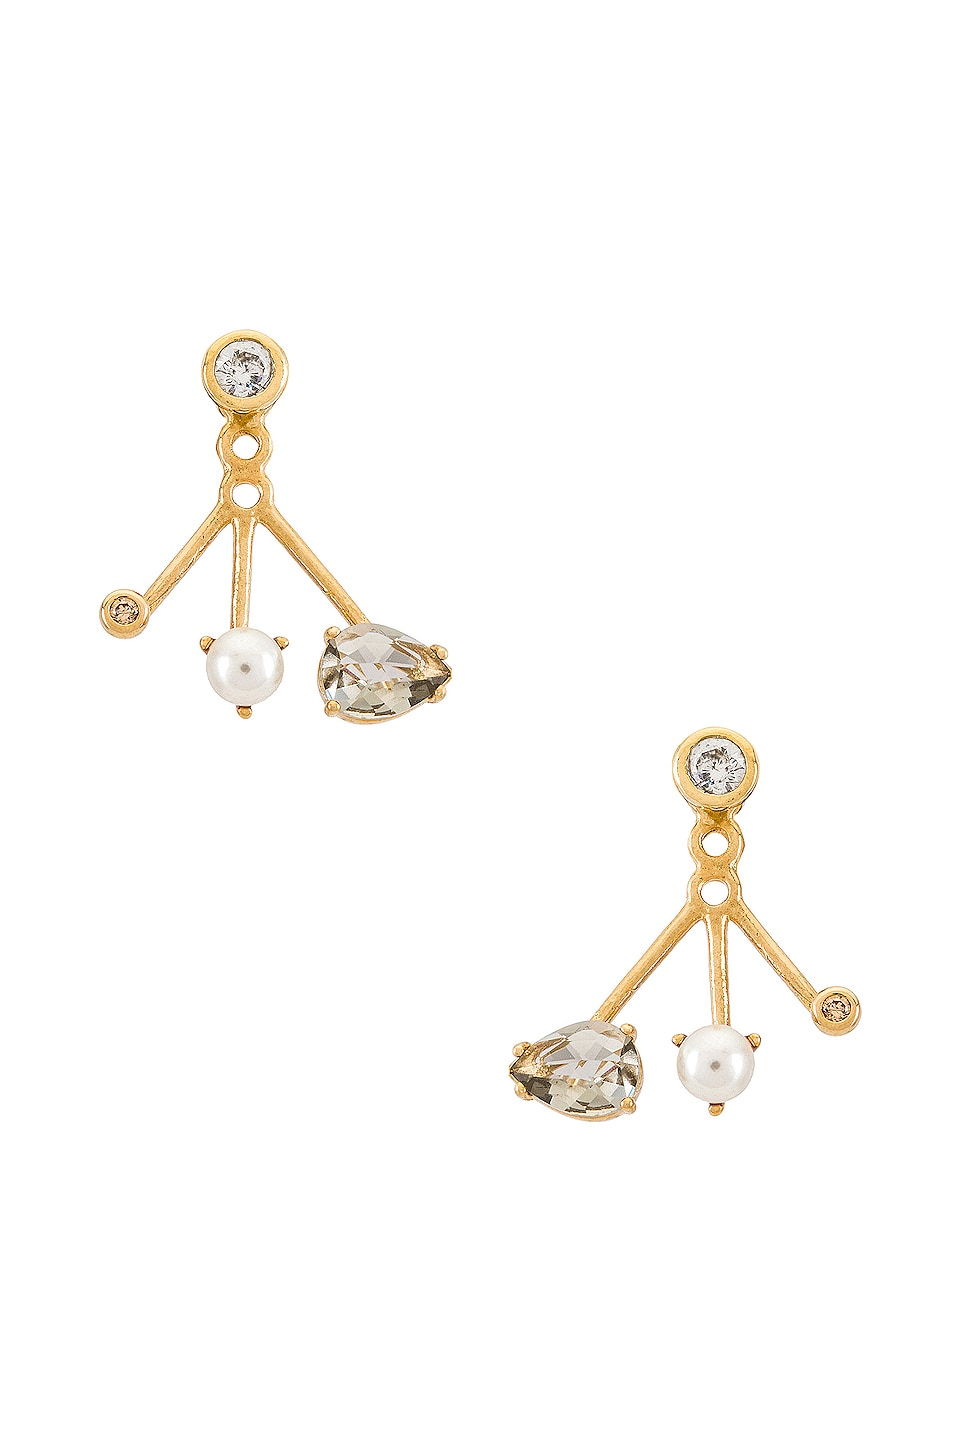 TAI Jewelry Jacket Earring in Gold & Opal Yellow